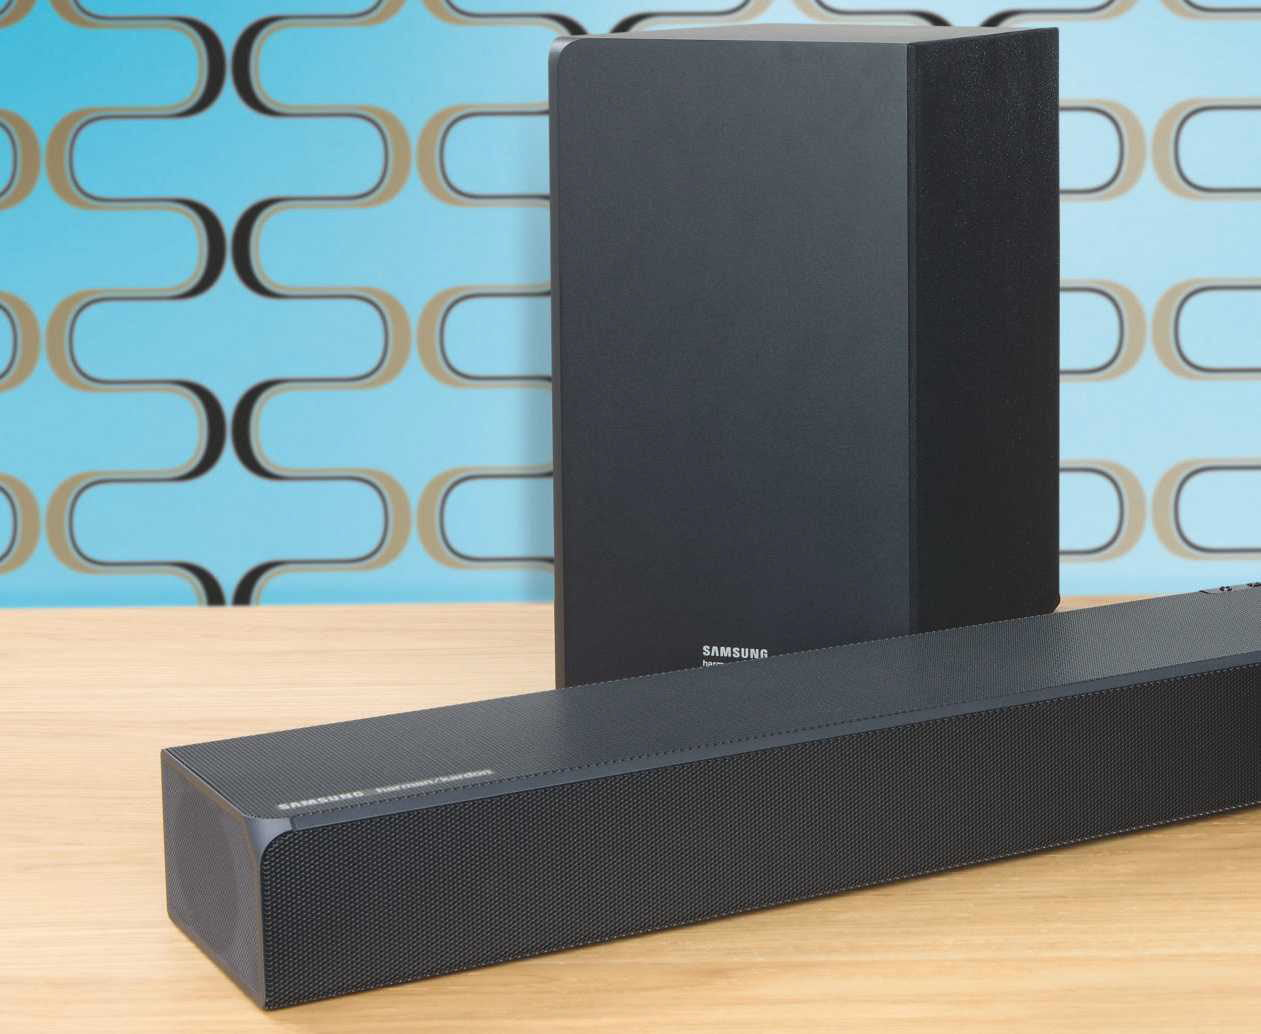 Sound Hw-n950 Review 'bar Samsung Cinematic 7review